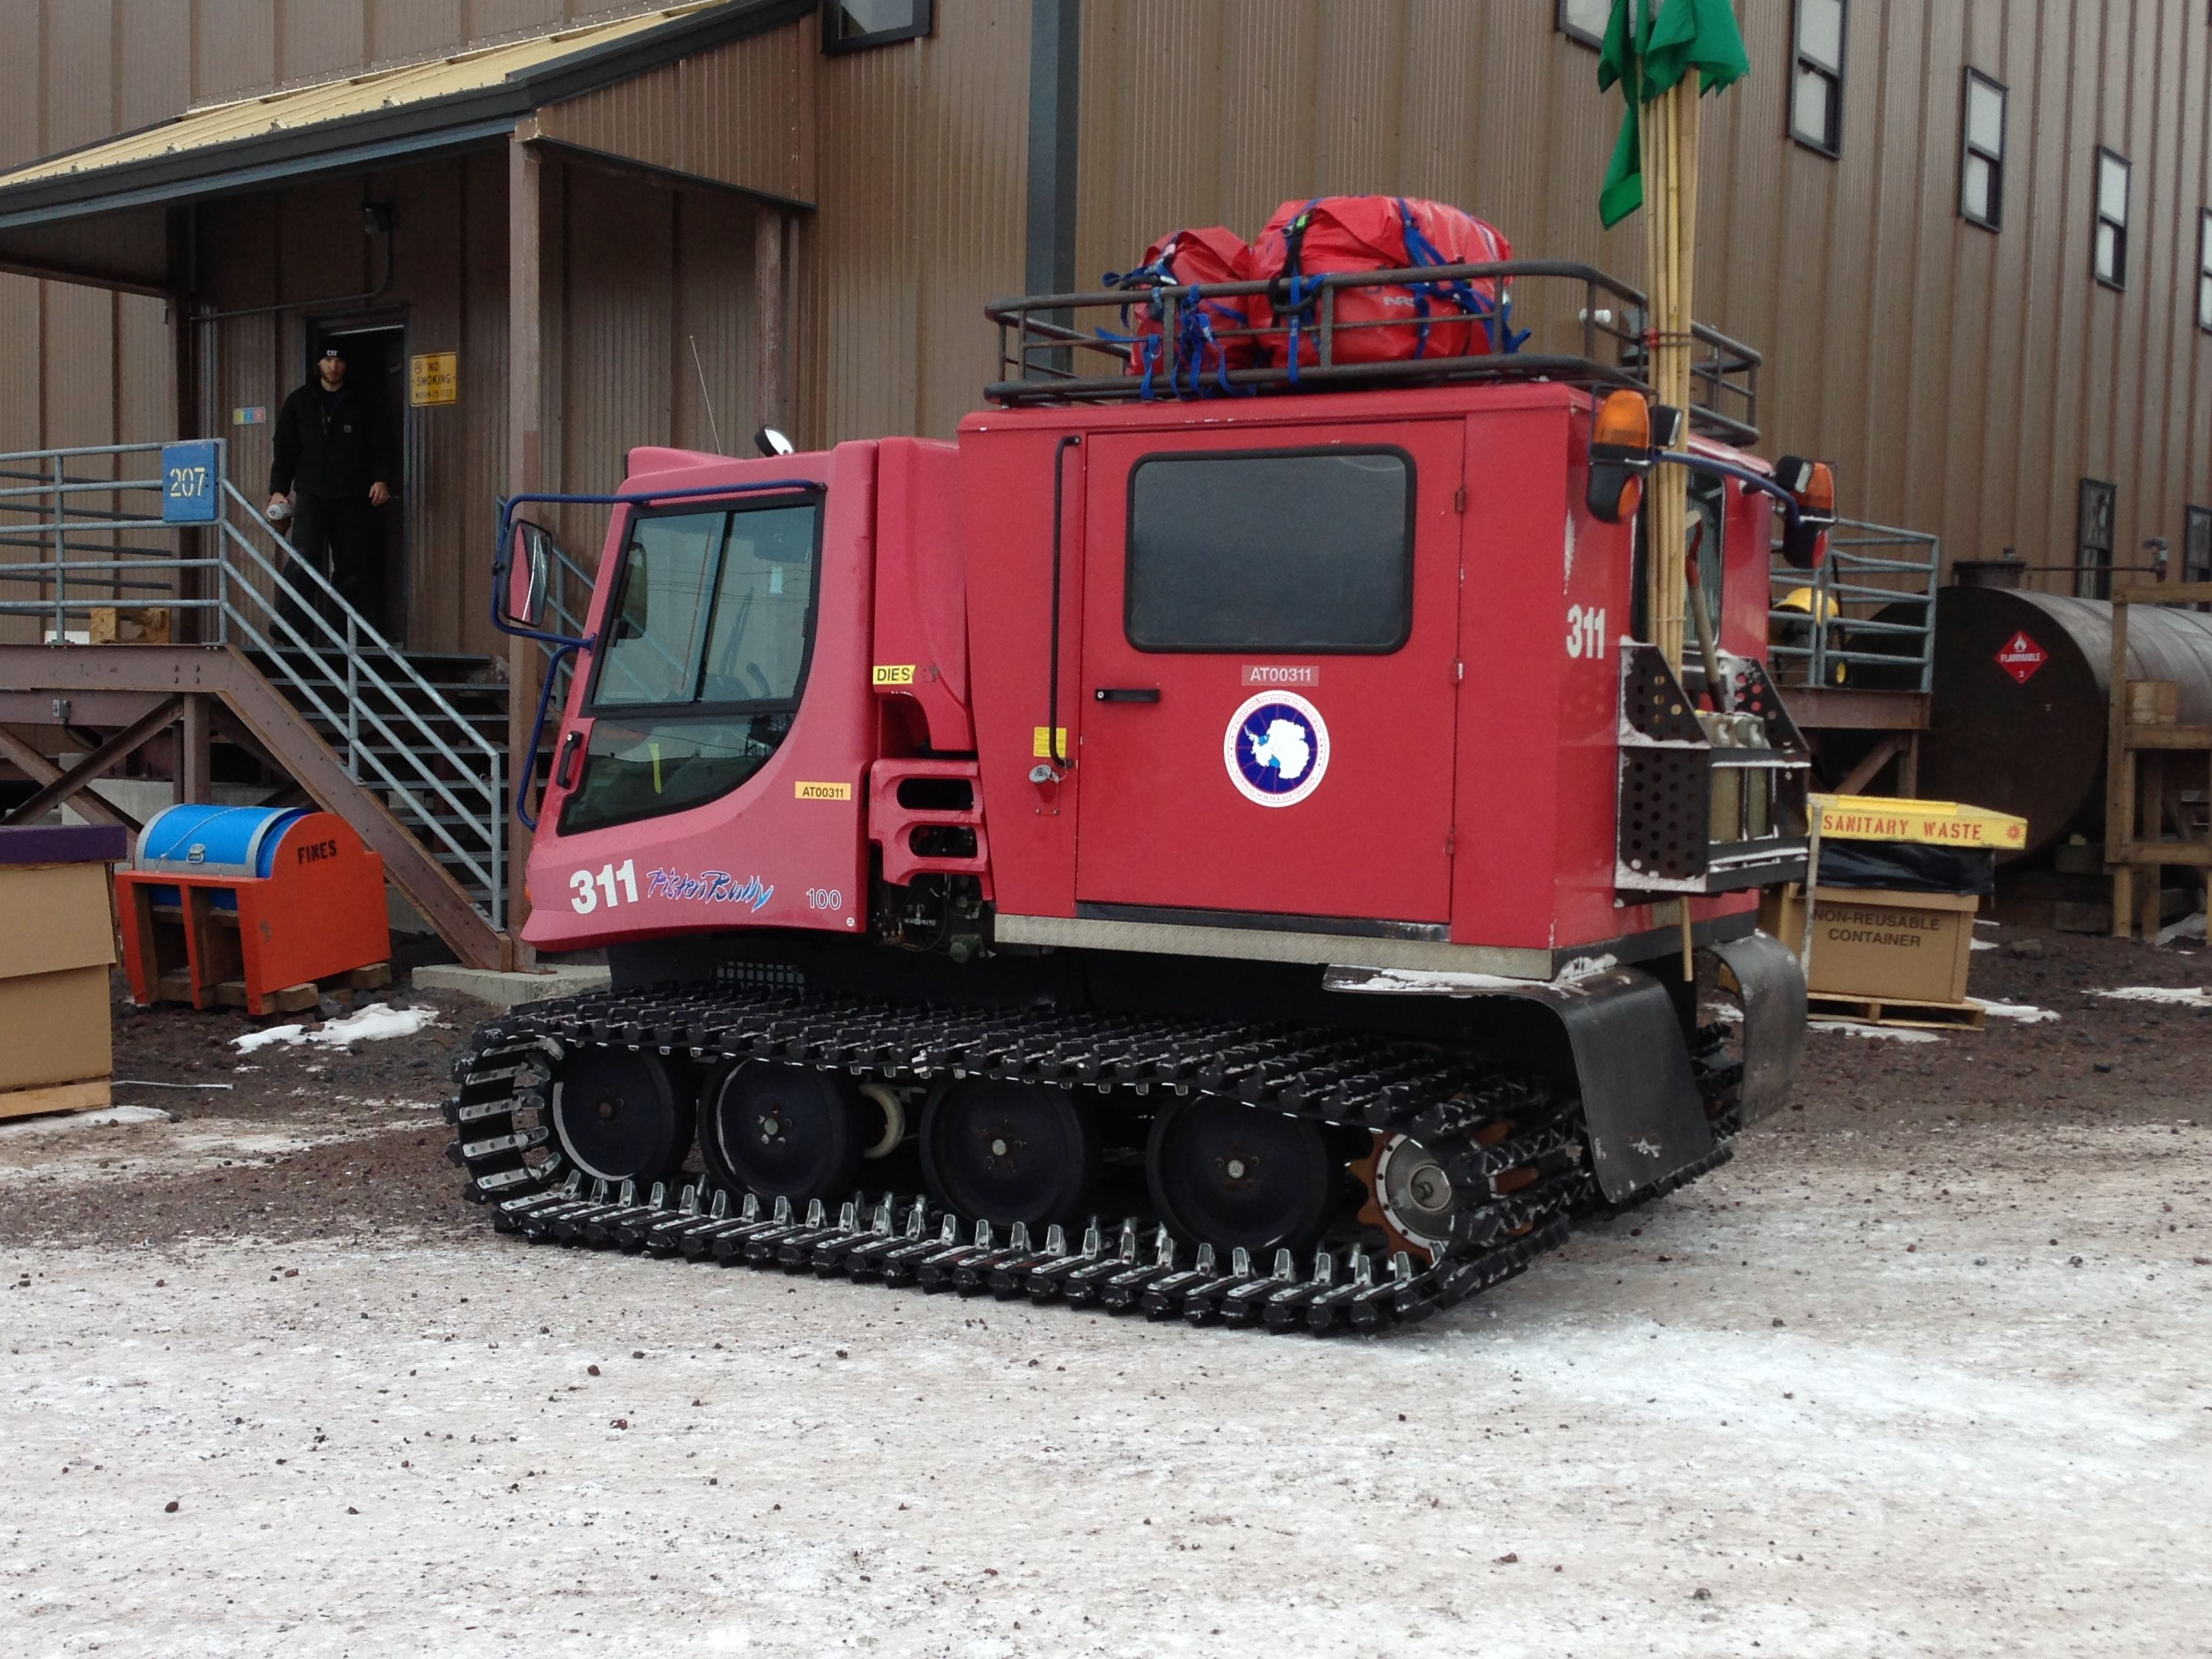 Pisten bully 100 for sale - Gregontheice This Is A Pisten Bully We Use These To Carry People Supplies